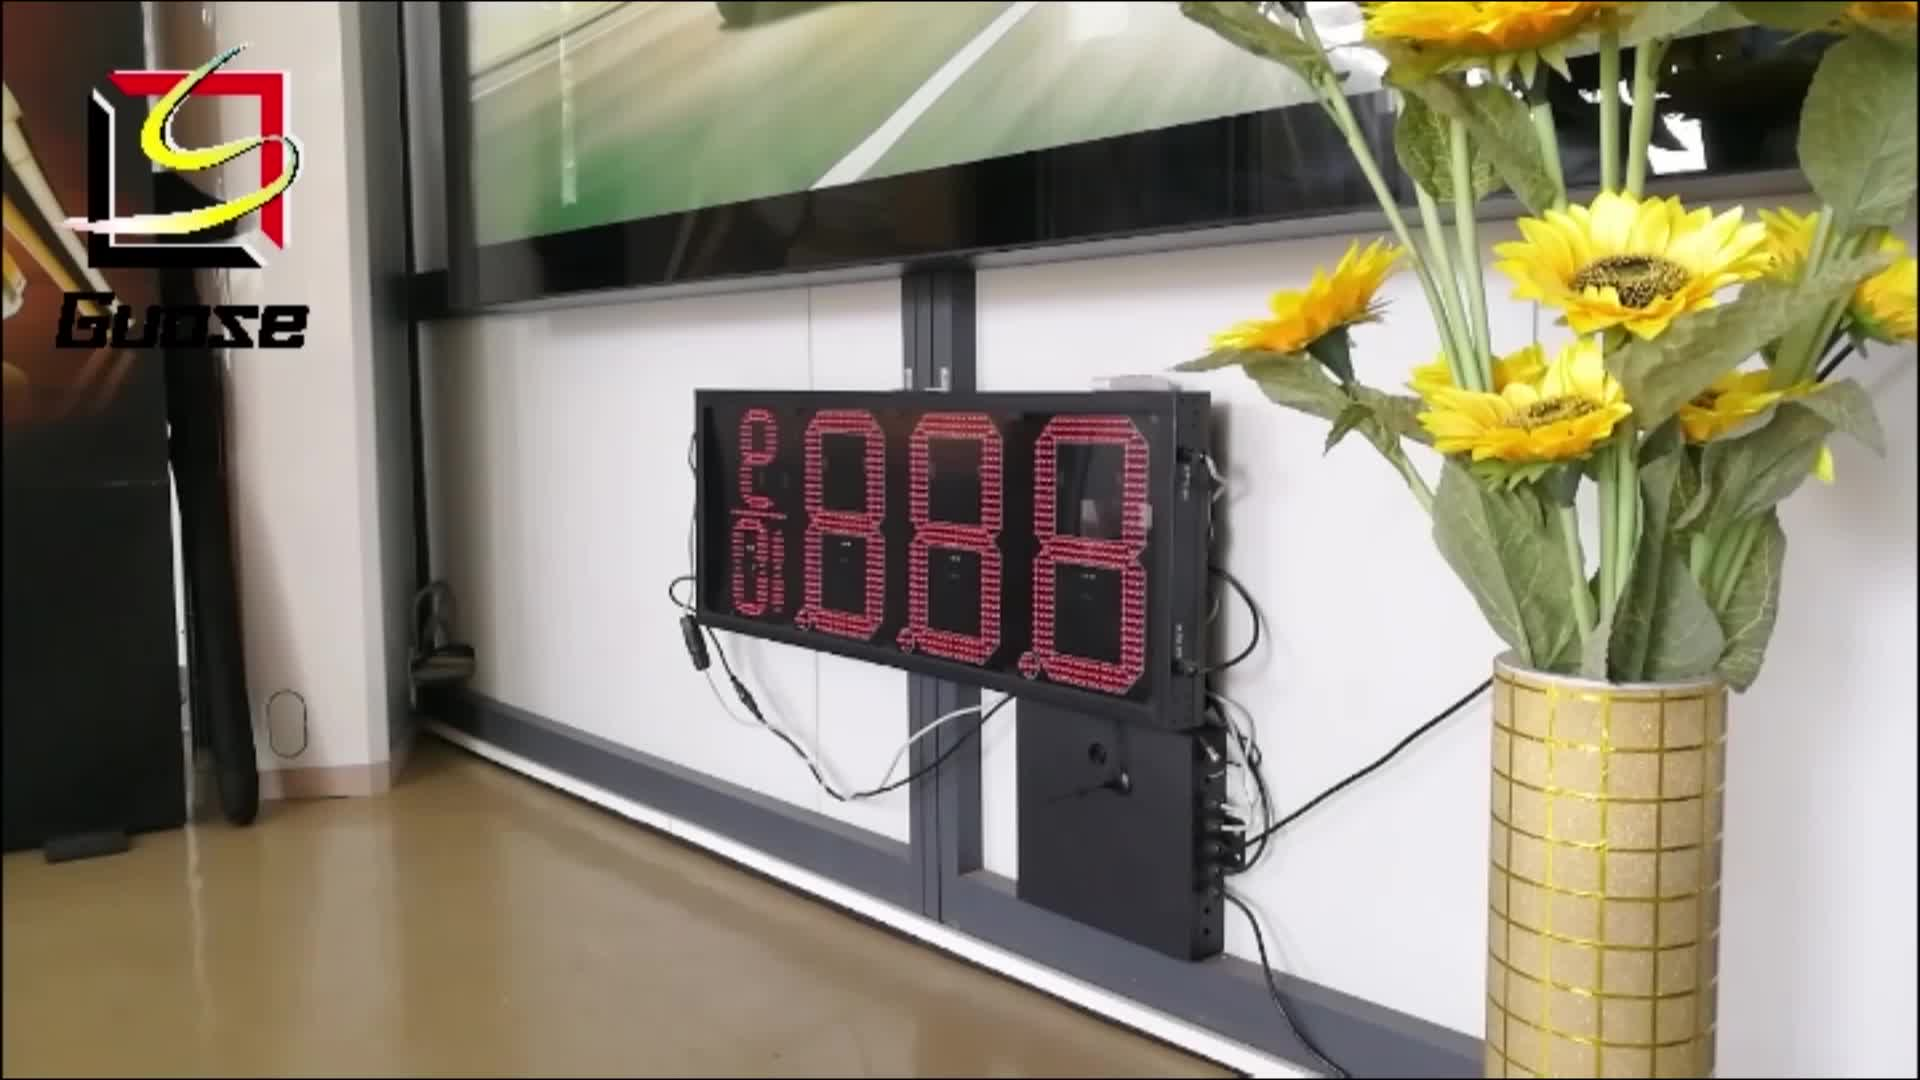 Waterproof LED gas station price sign